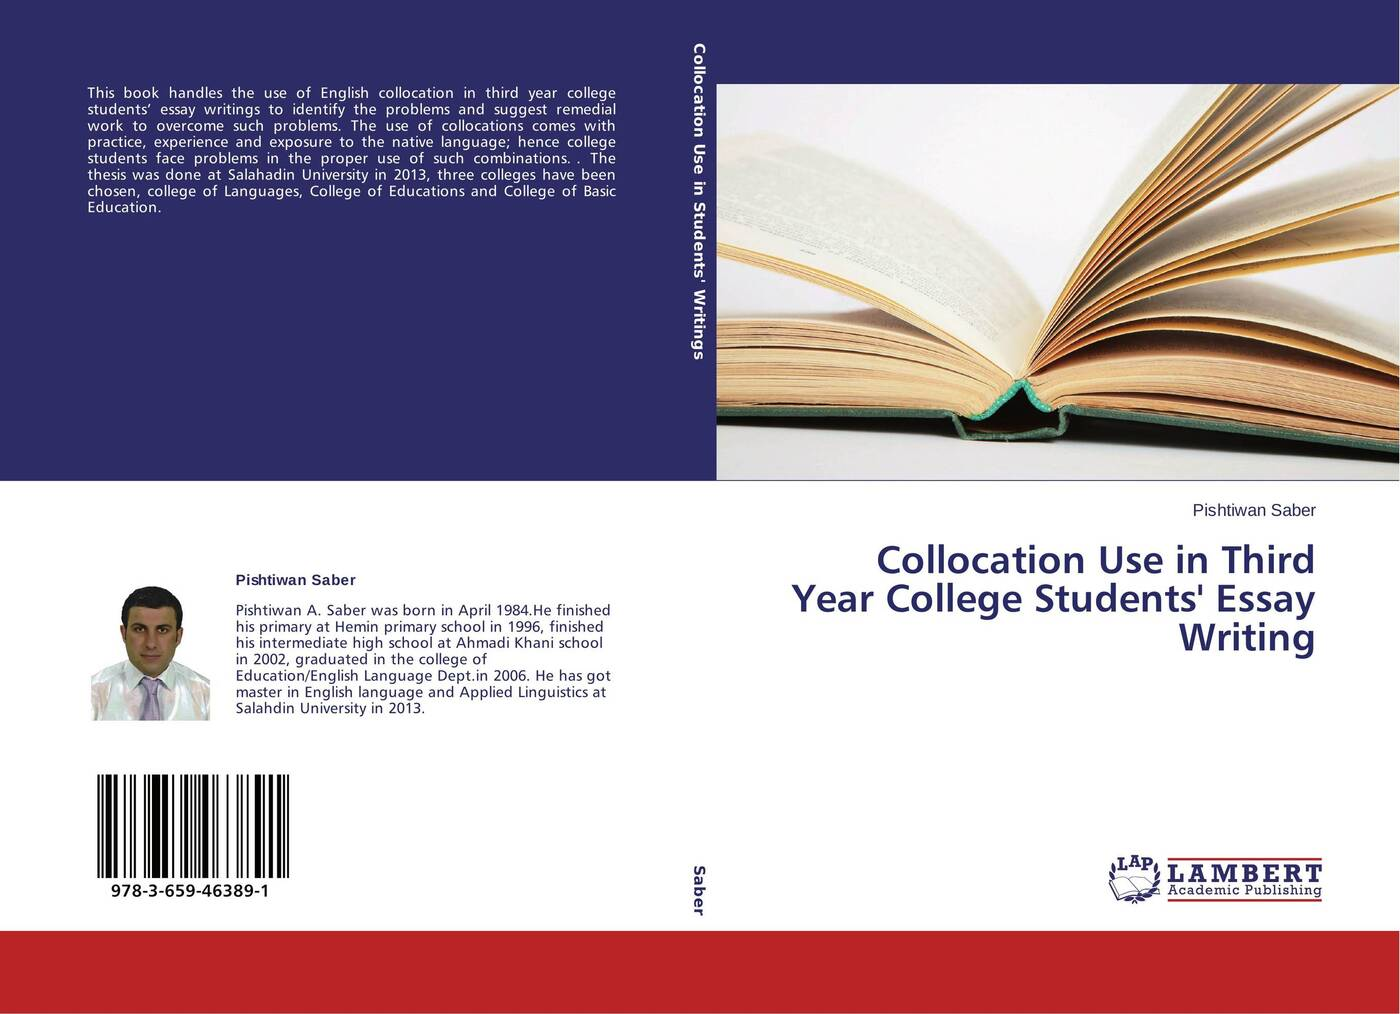 Pishtiwan Saber Collocation Use in Third Year College Students Essay Writing